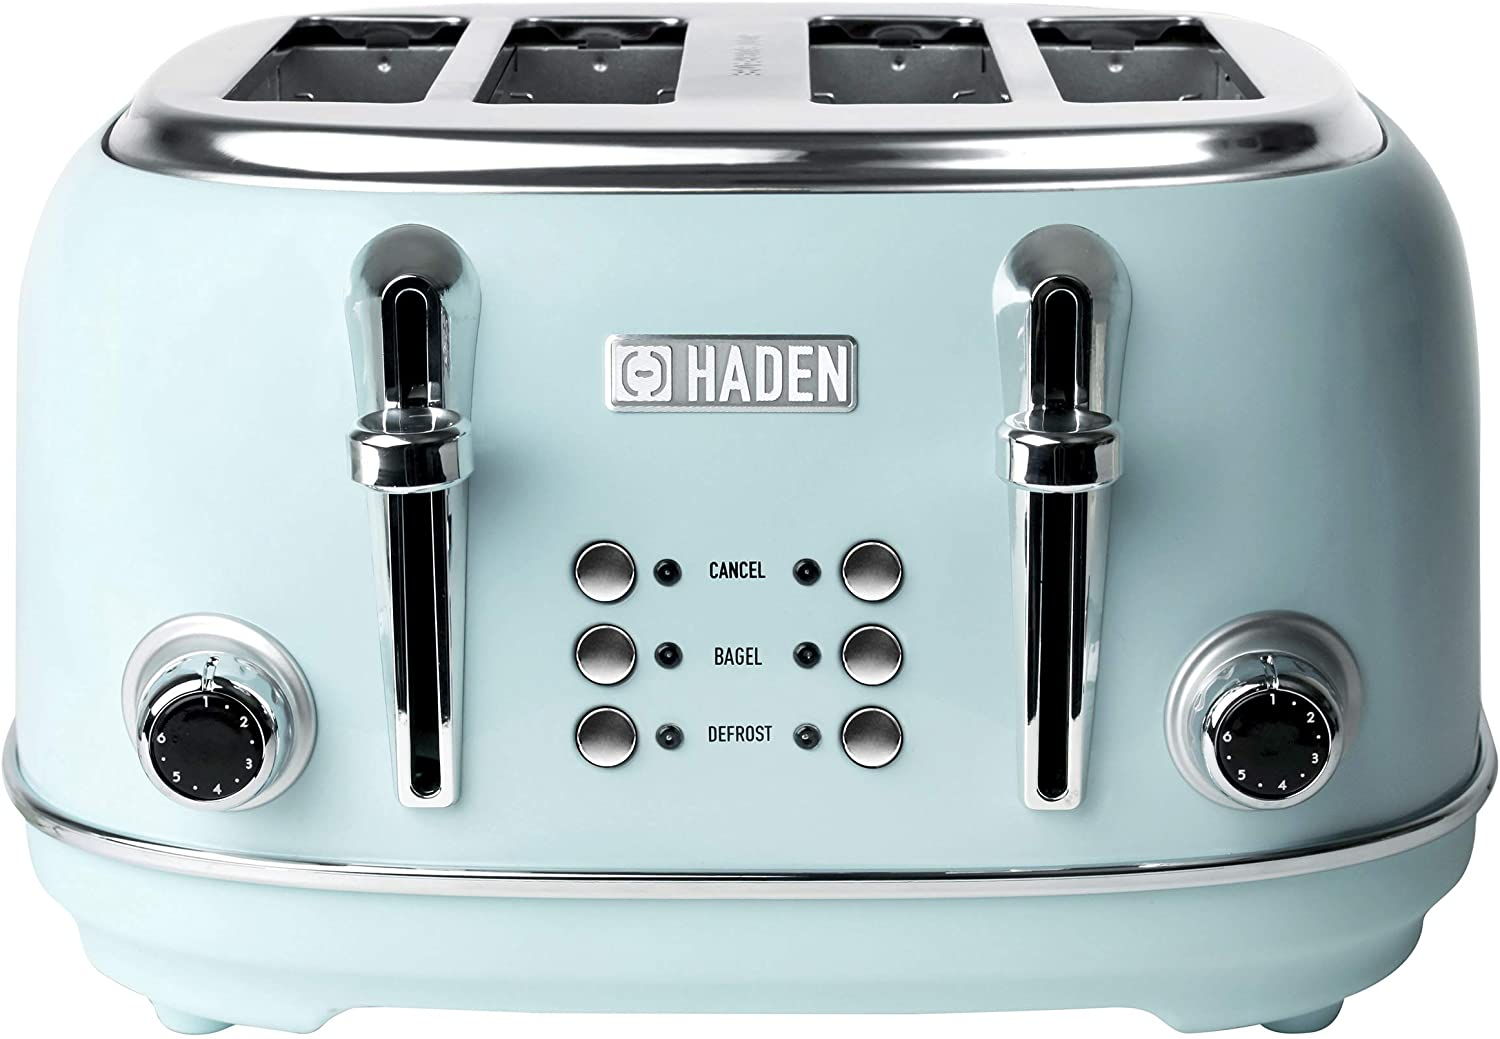 Haden HERITAGE 4-Slice, Wide Slot Retro Toaster with Browning Control, Cancel, and Defrost Settings in Light Blue Turquoise